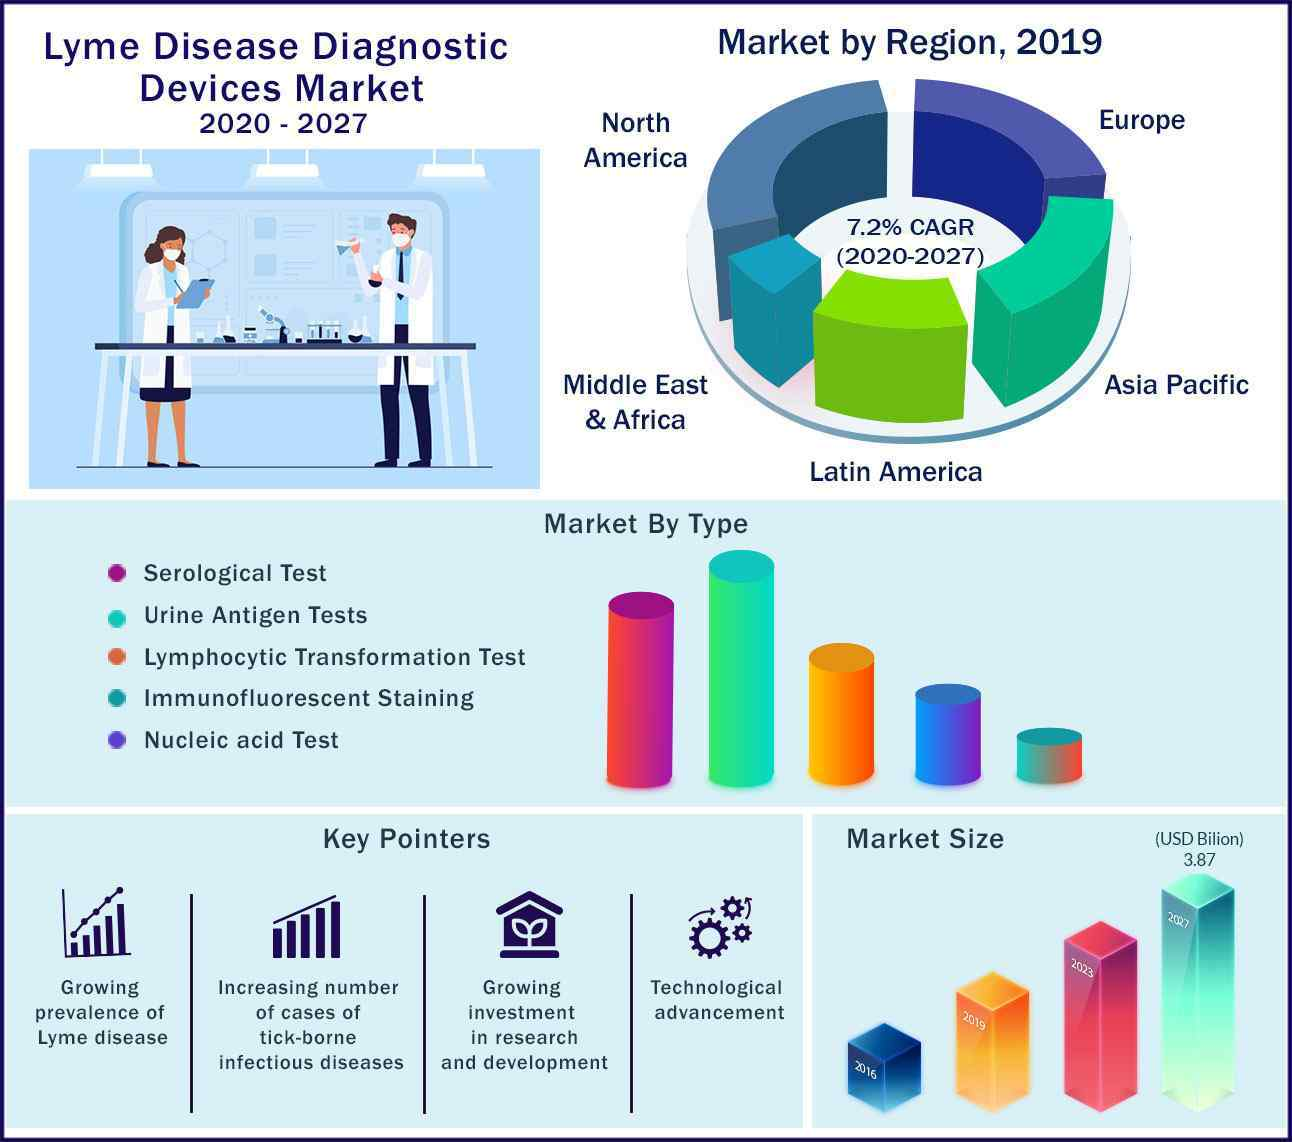 Global Lyme Disease Diagnostic Devices Market 2020 to 2027